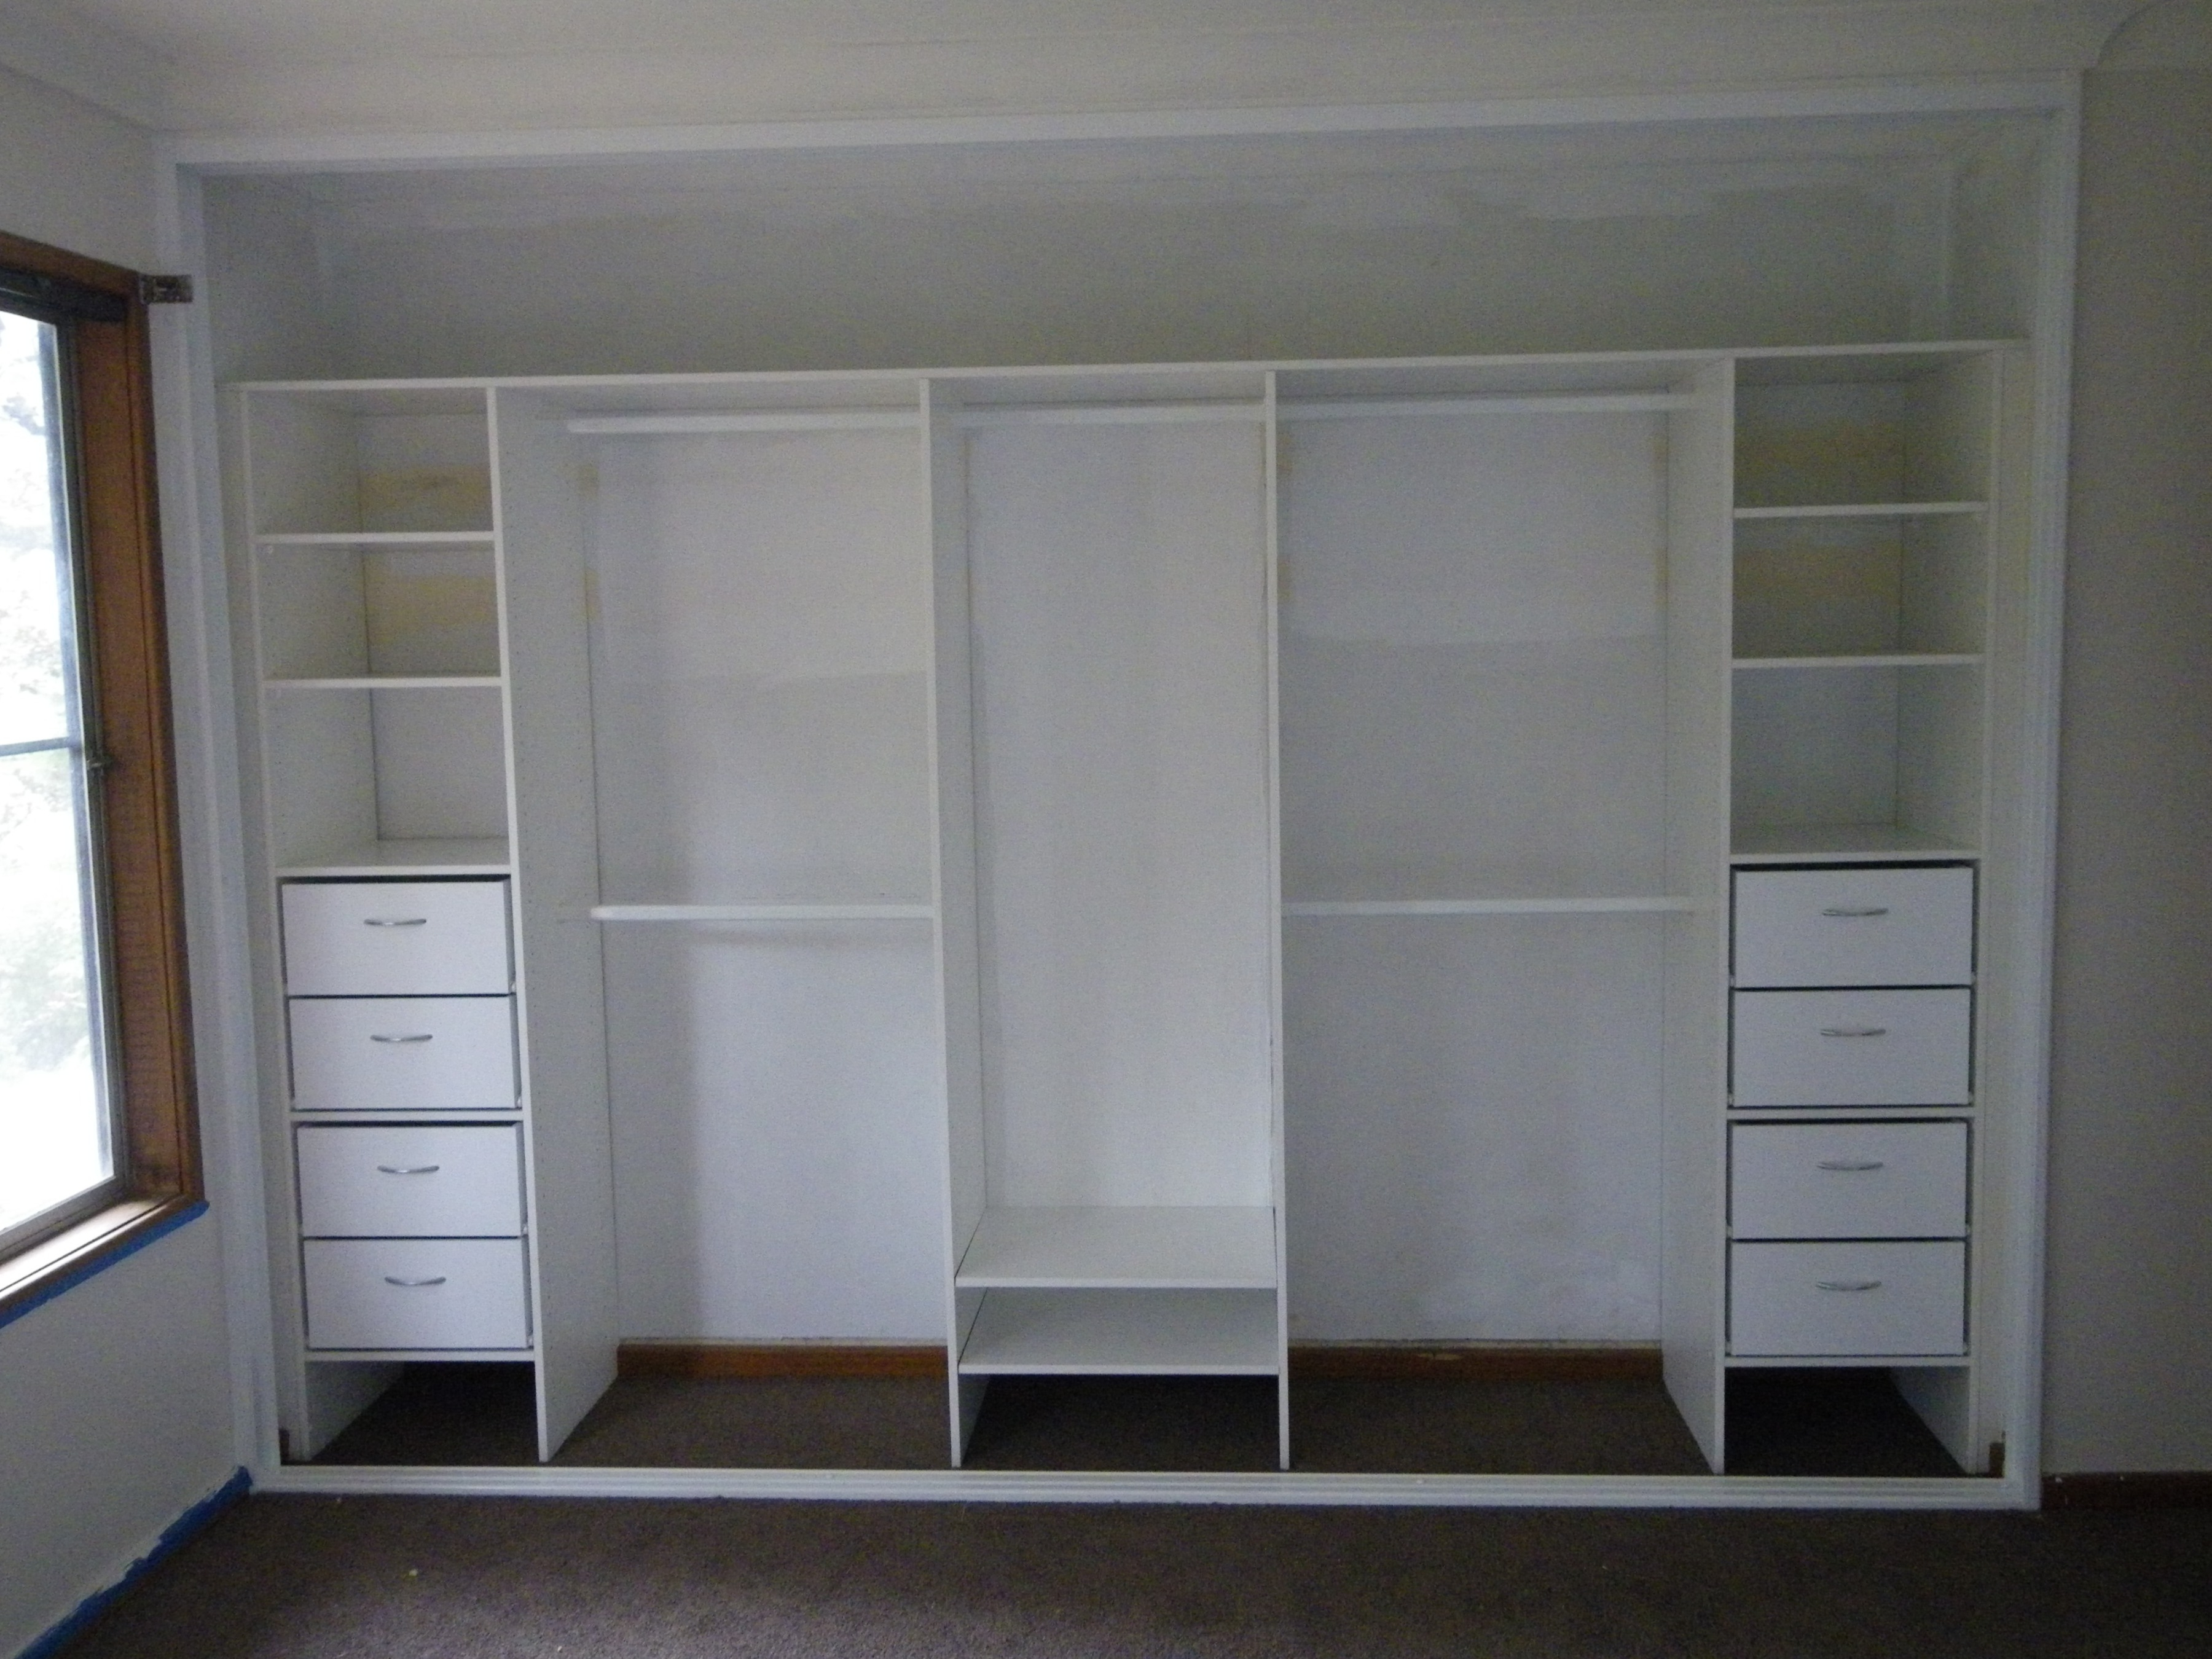 Recent Drawers For Fitted Wardrobes Intended For Furniture : Built In Robes Made To Measure Wardrobes Wardrobe (View 15 of 15)